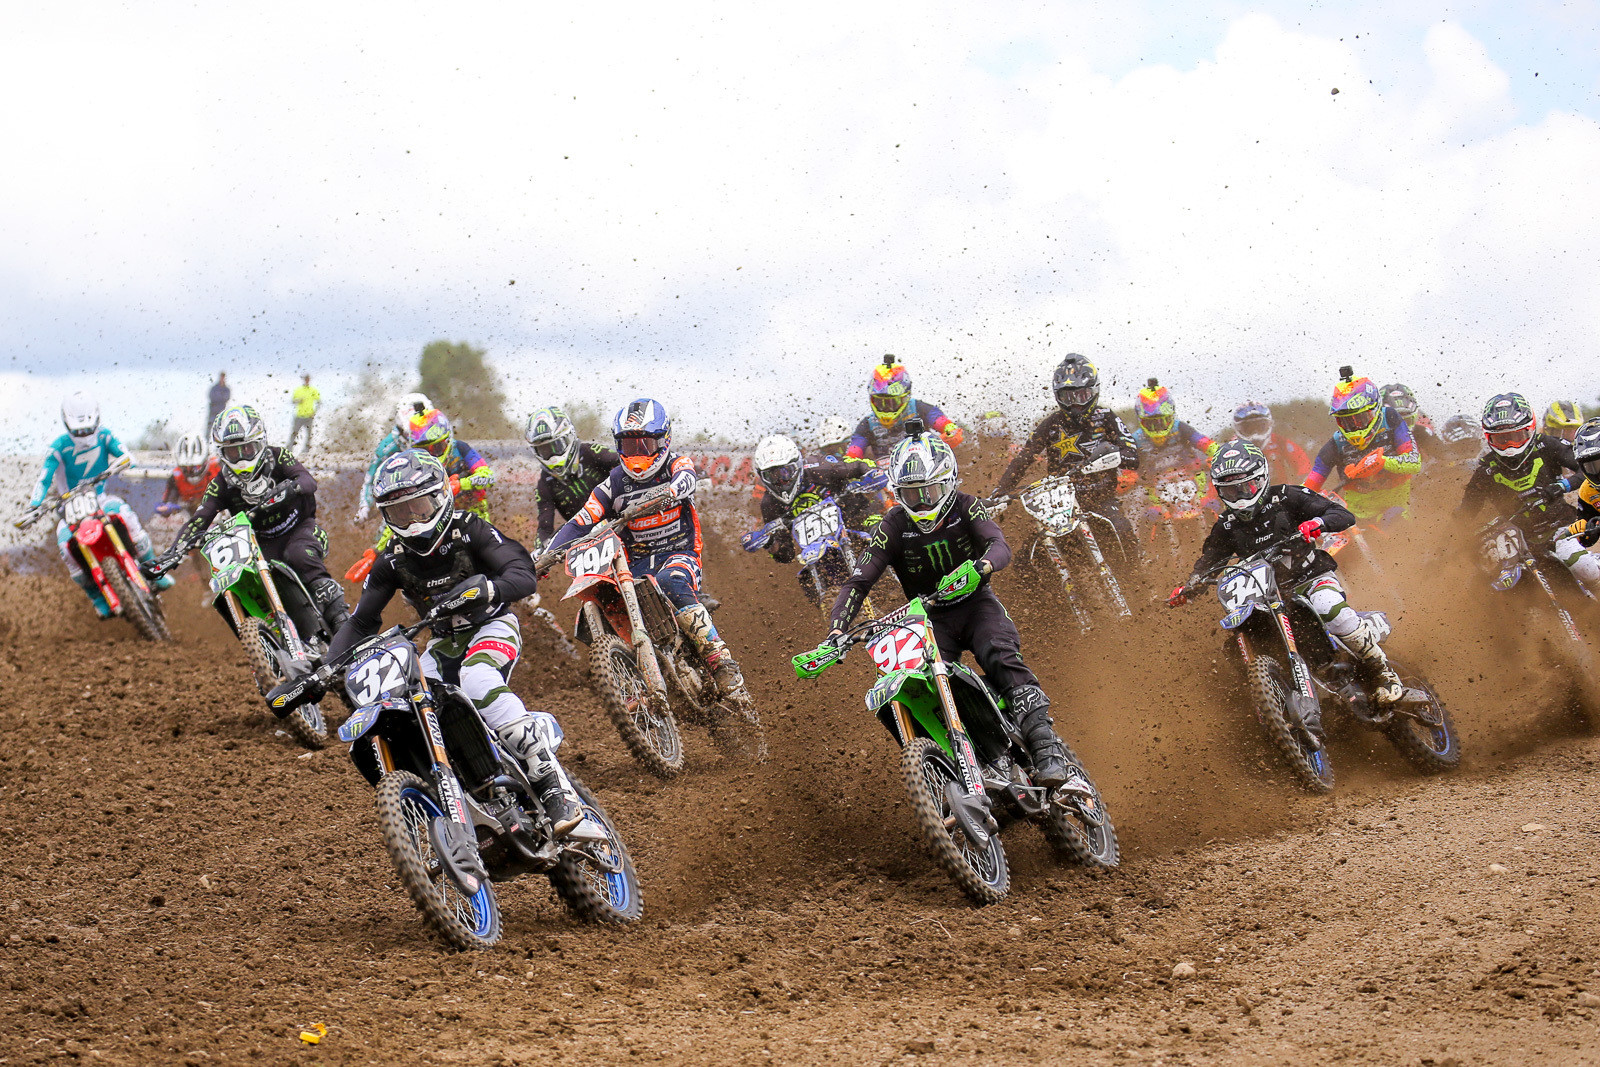 After the presentation, Justin Cooper went out and nabbed the holeshot...though he slipped back in the pack a bit and ended up with a 4-4 score for the day.